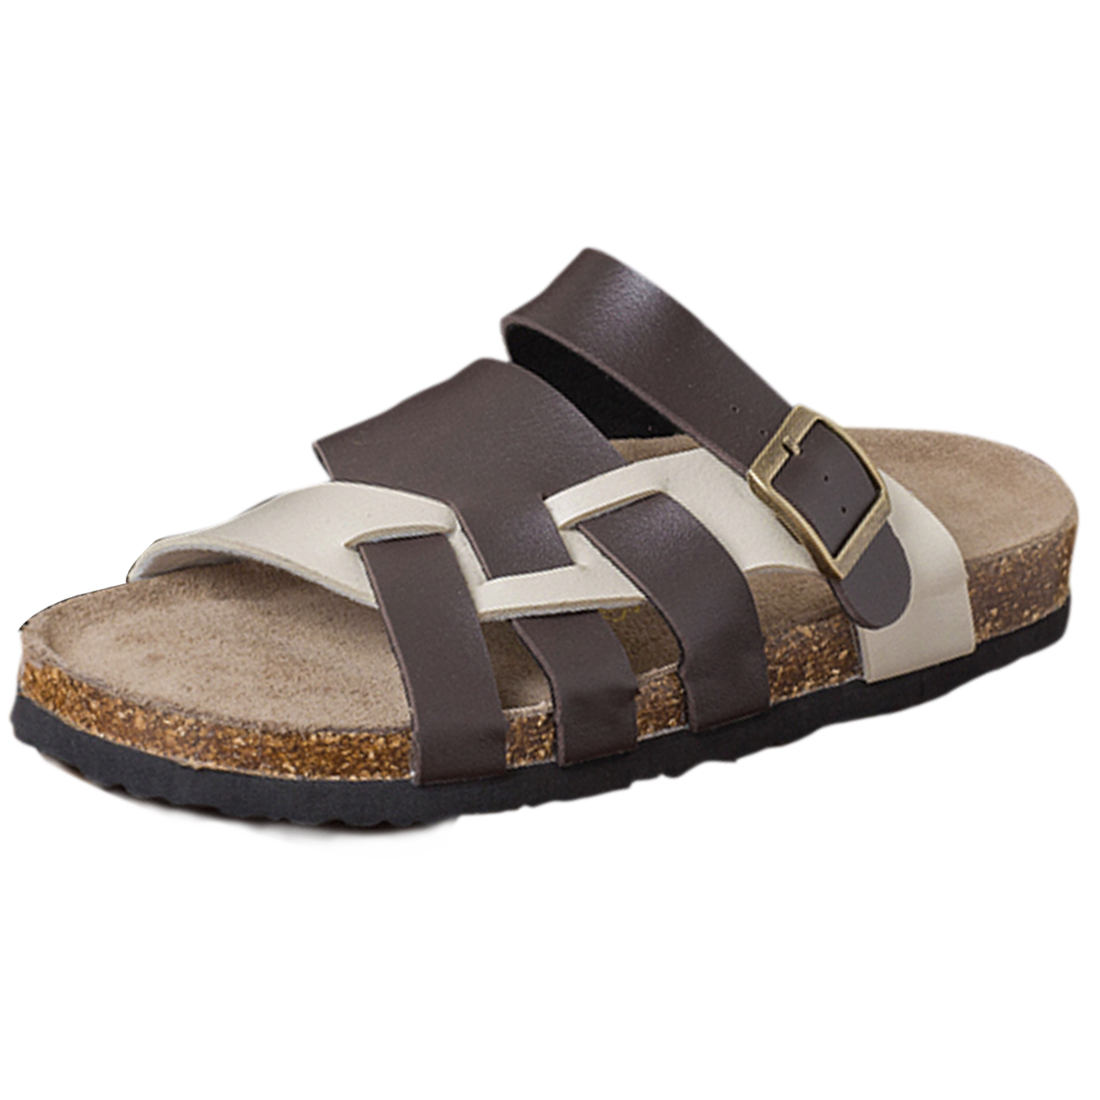 Mens Leisure Brown Beige Cross Strap Buckled Sandals US 8